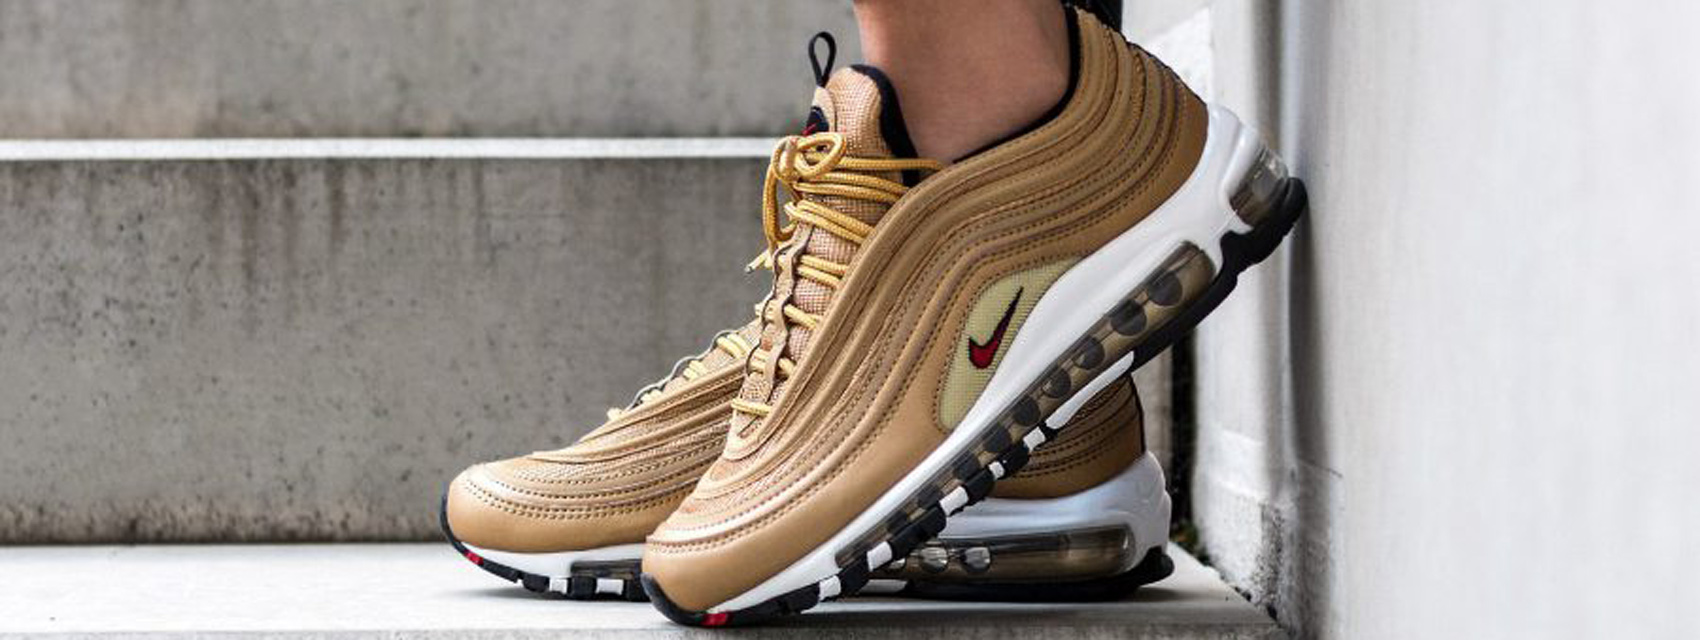 Cheap Nike Air Max 97 Black Gold Le Site de la Sneaker